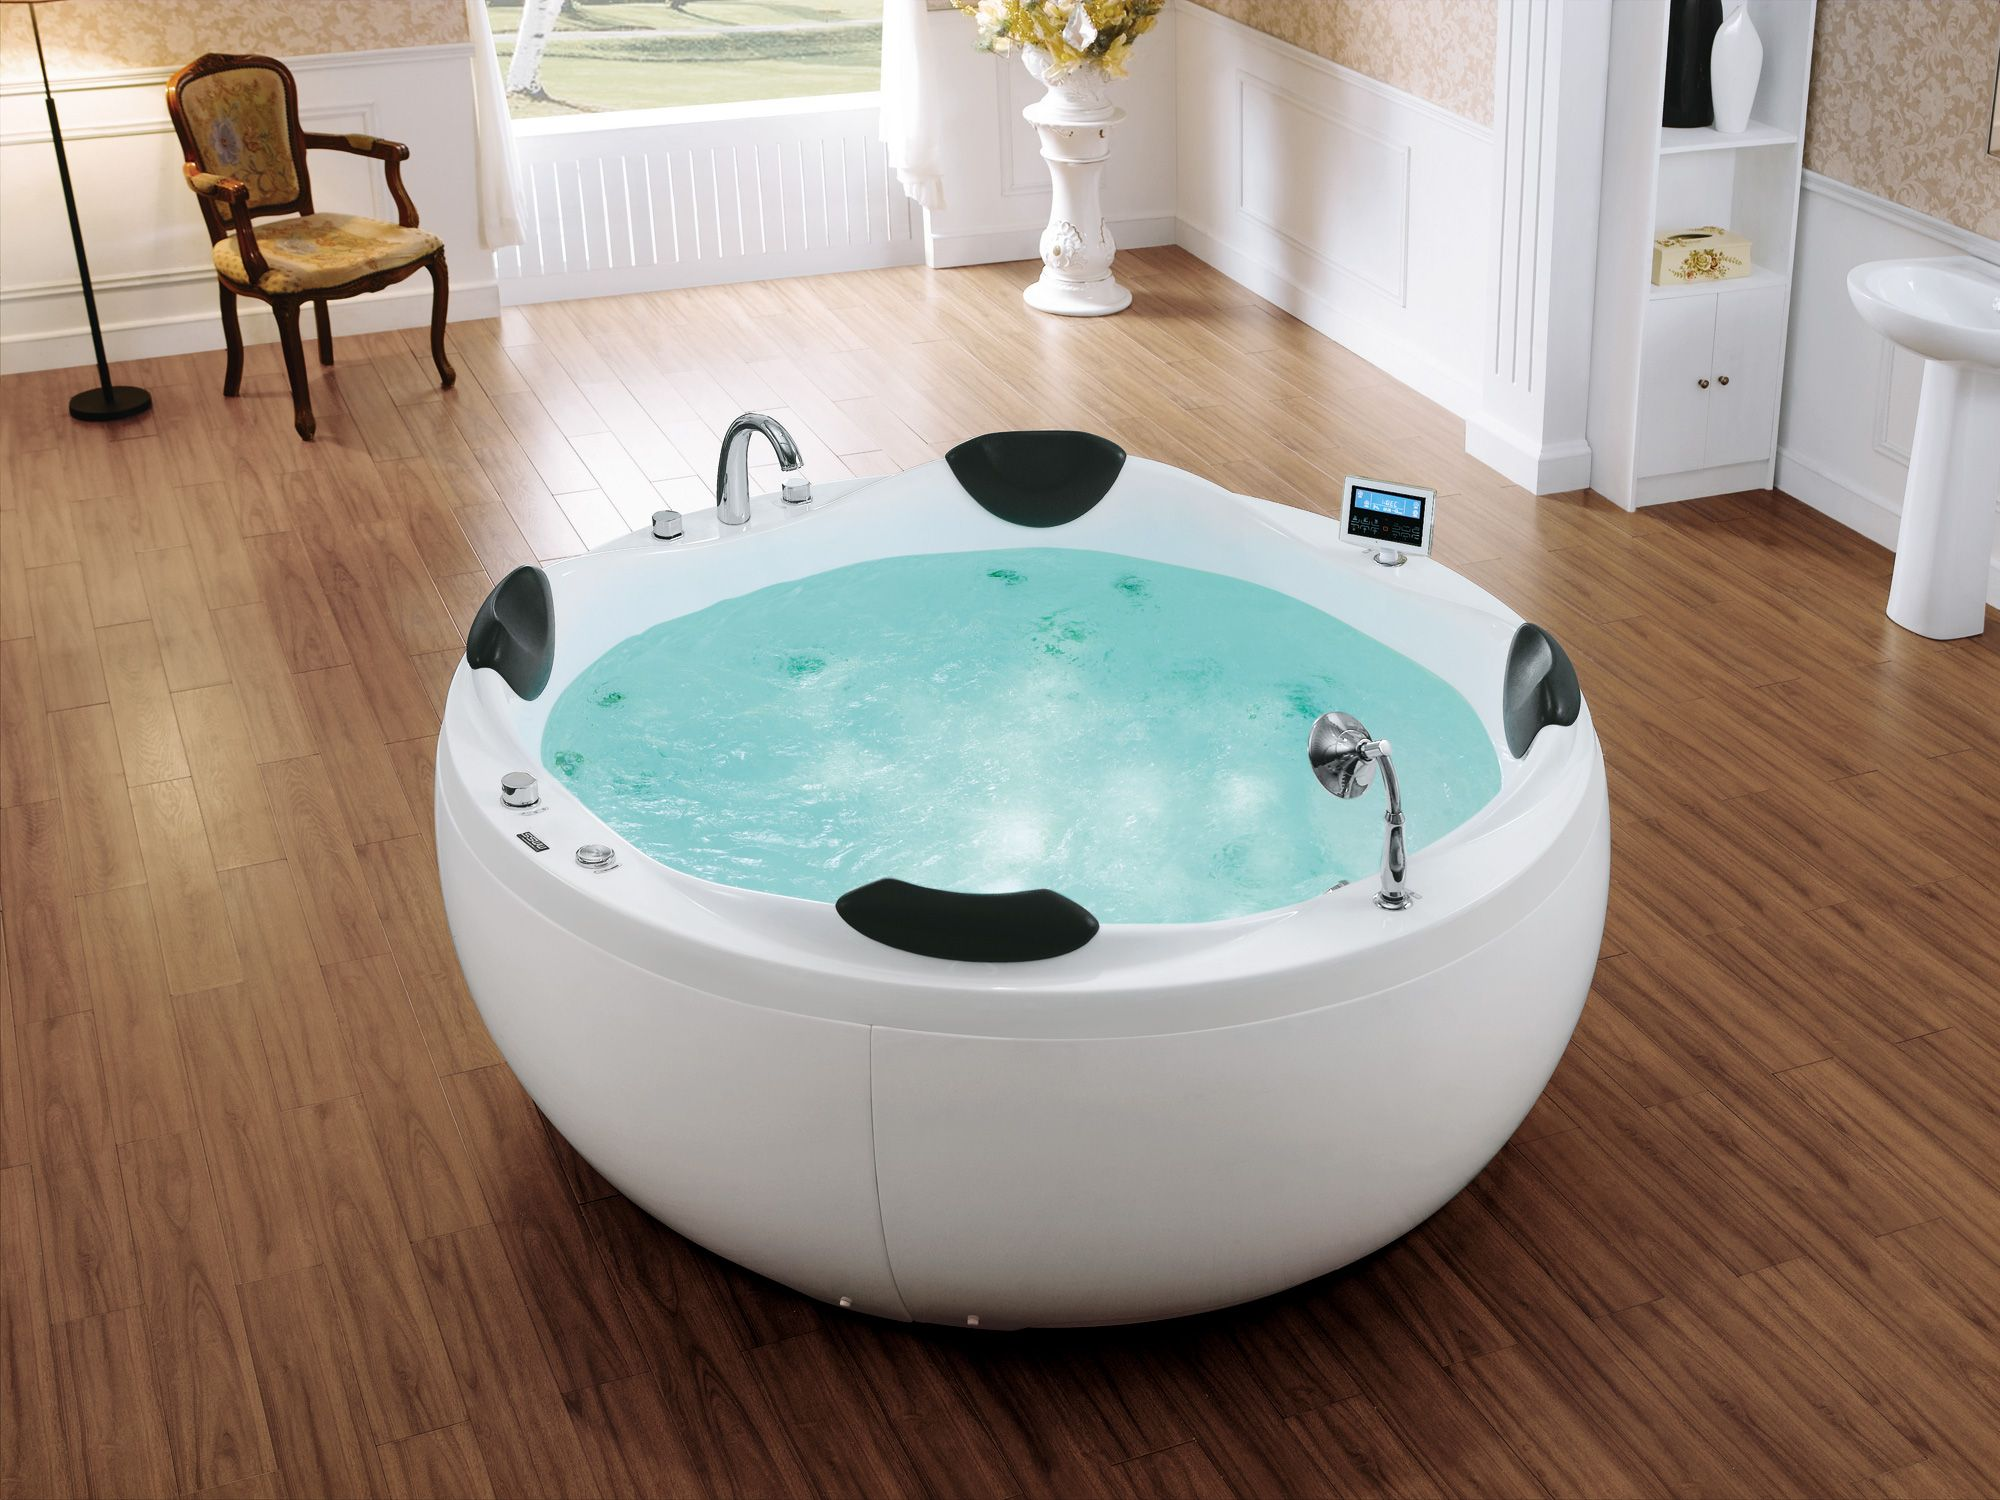 A701 SSWW Round Massage Bathtub | Massage Bathtub | Pinterest ...